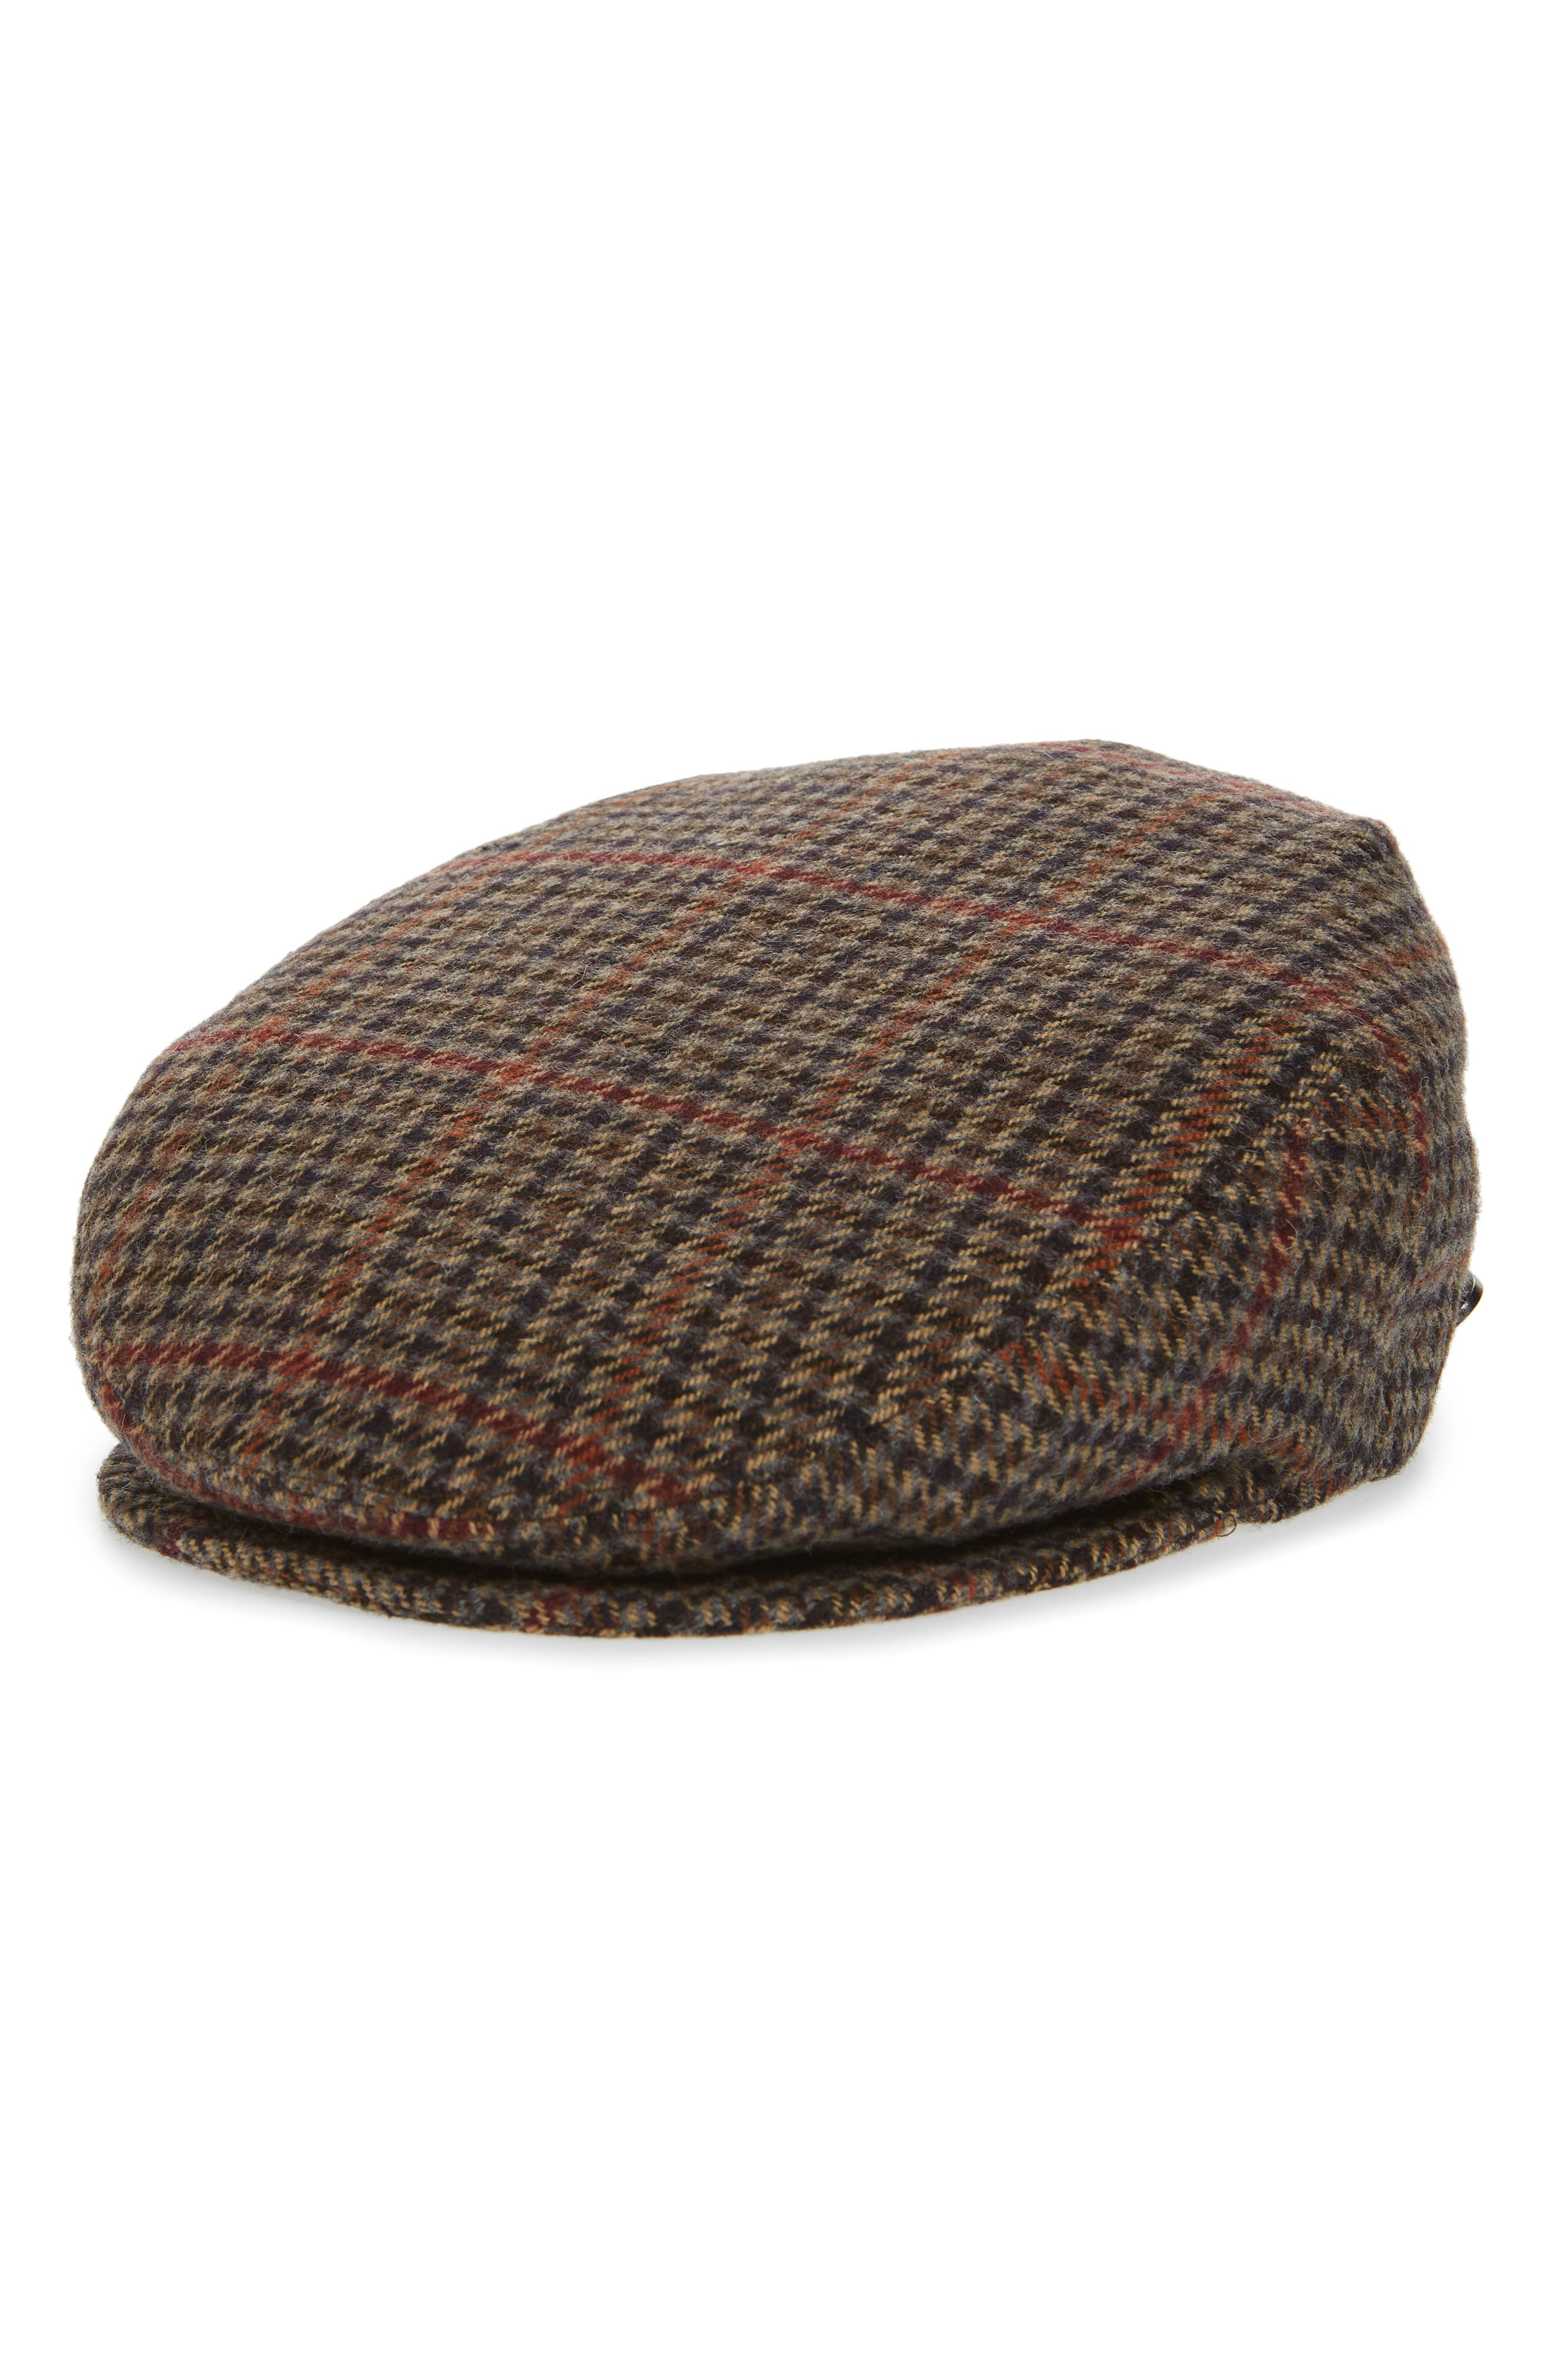 Lord Houndstooth Wool Driving Cap,                         Main,                         color, 001